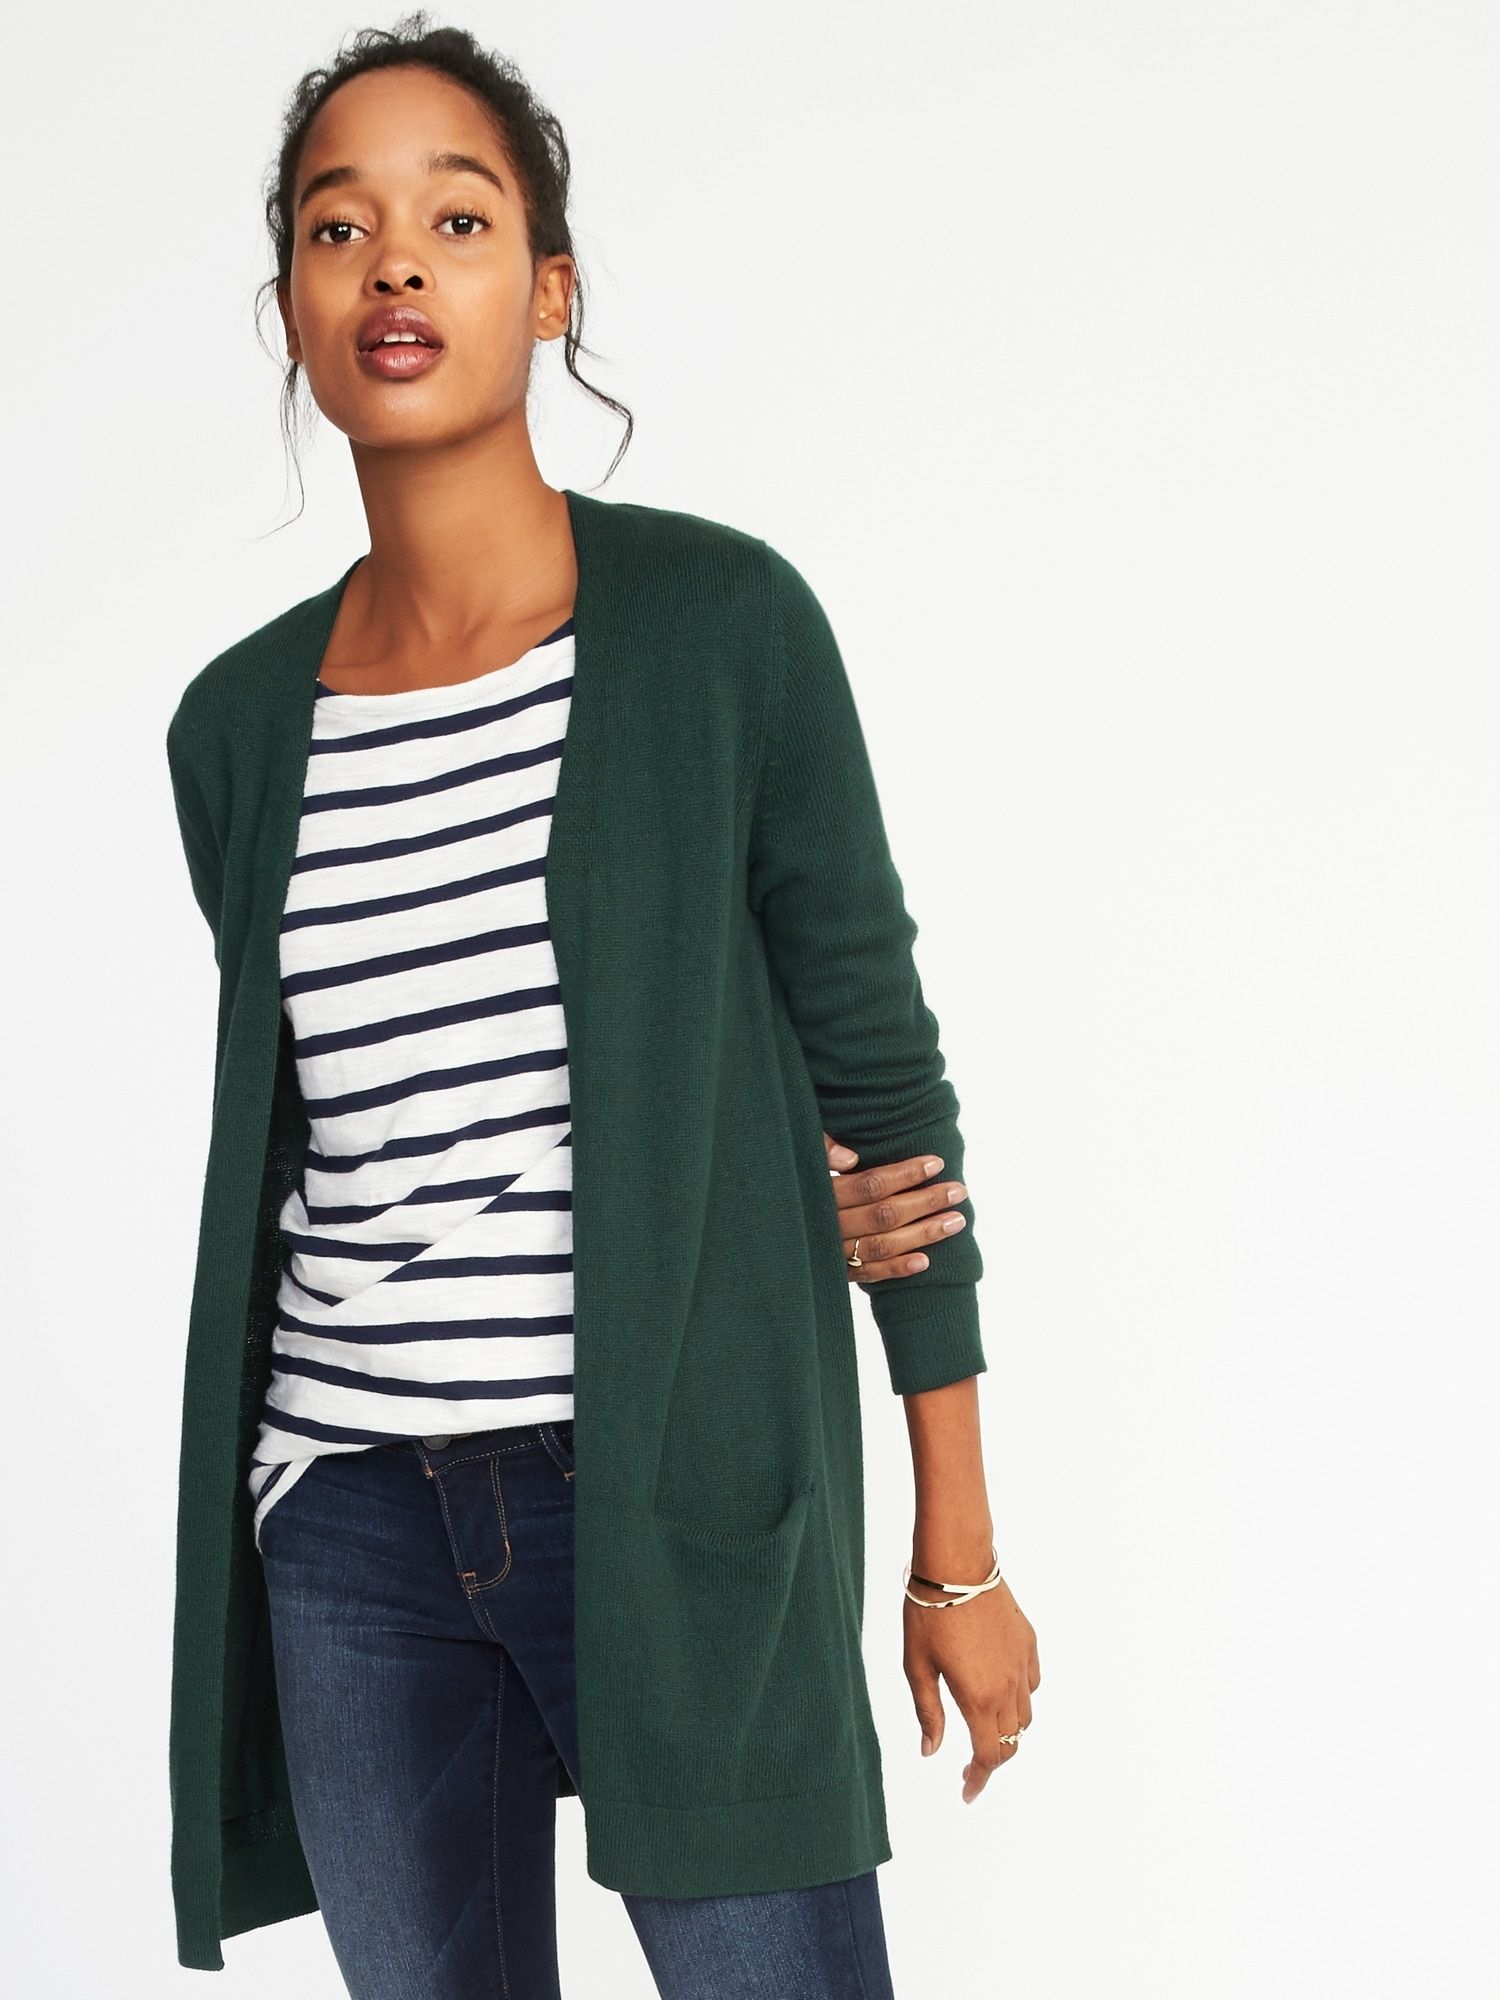 Cardigan for women navy sale long sweaters old india